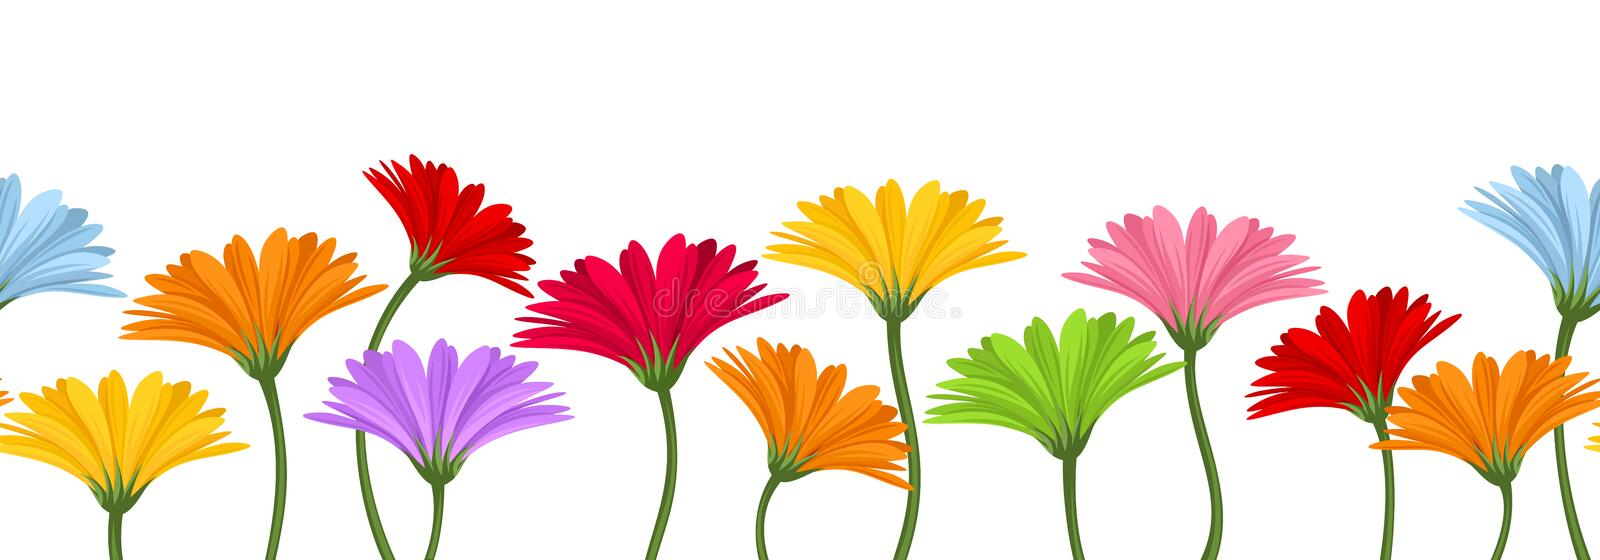 Download Horizontal Seamless Background With Colorful Gerbera Flowers. Vector Illustration. Stock Vector - Illustration of flower, element: 43535881